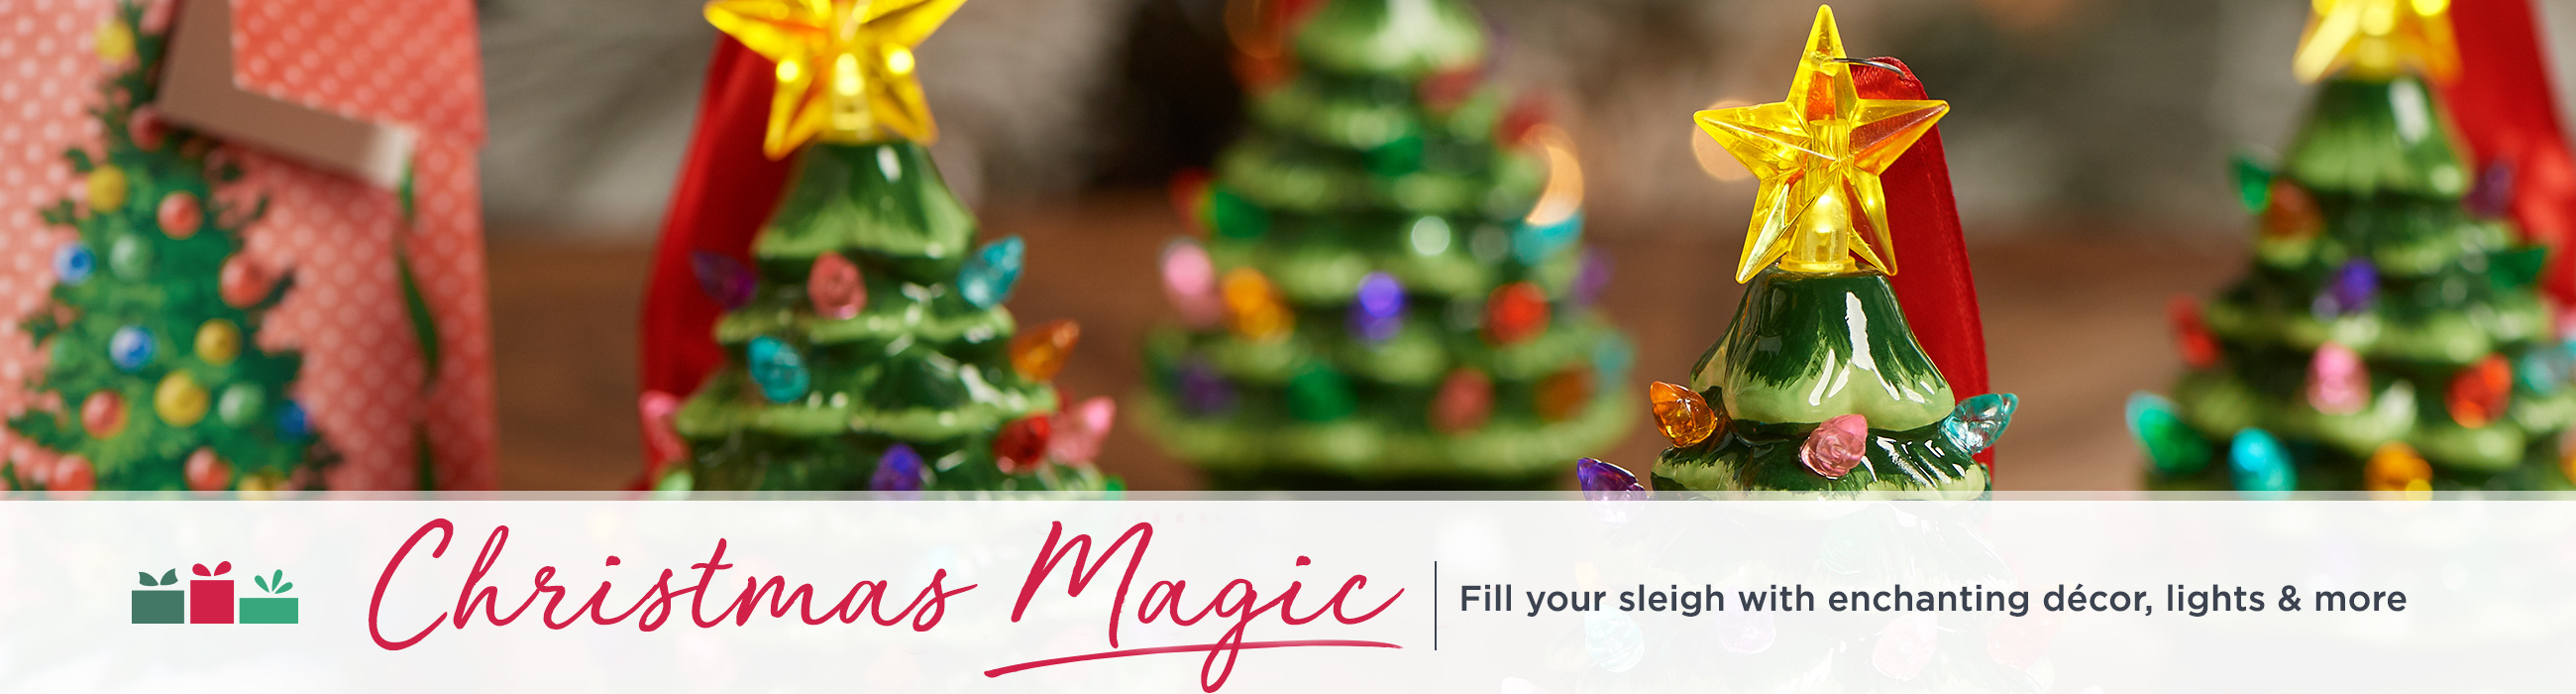 christmas magic fill your sleigh with enchanting dcor lights more - Light Up Presents Christmas Decorations